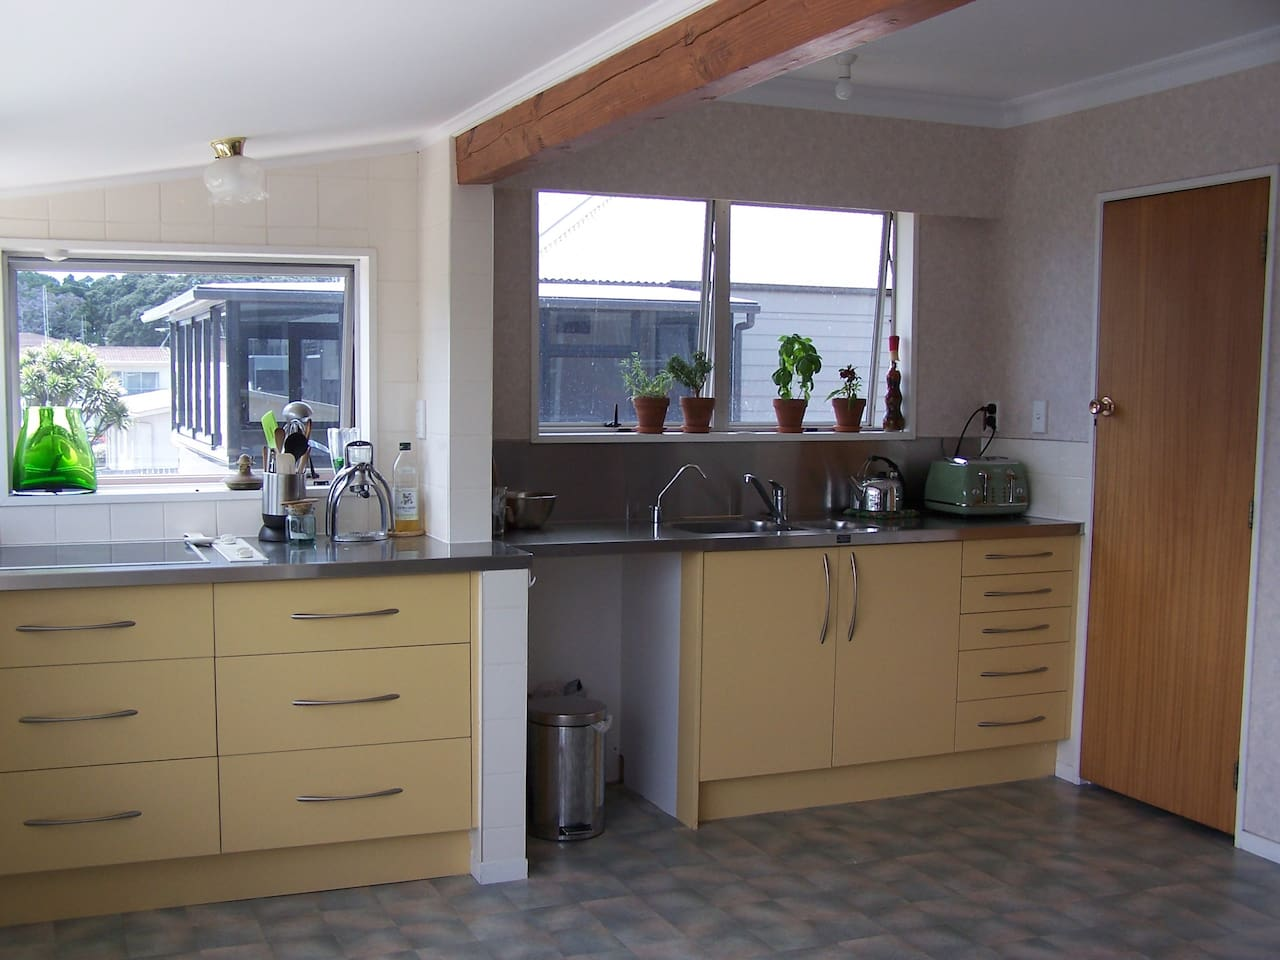 Spacious and light kitchen shared with Hosts